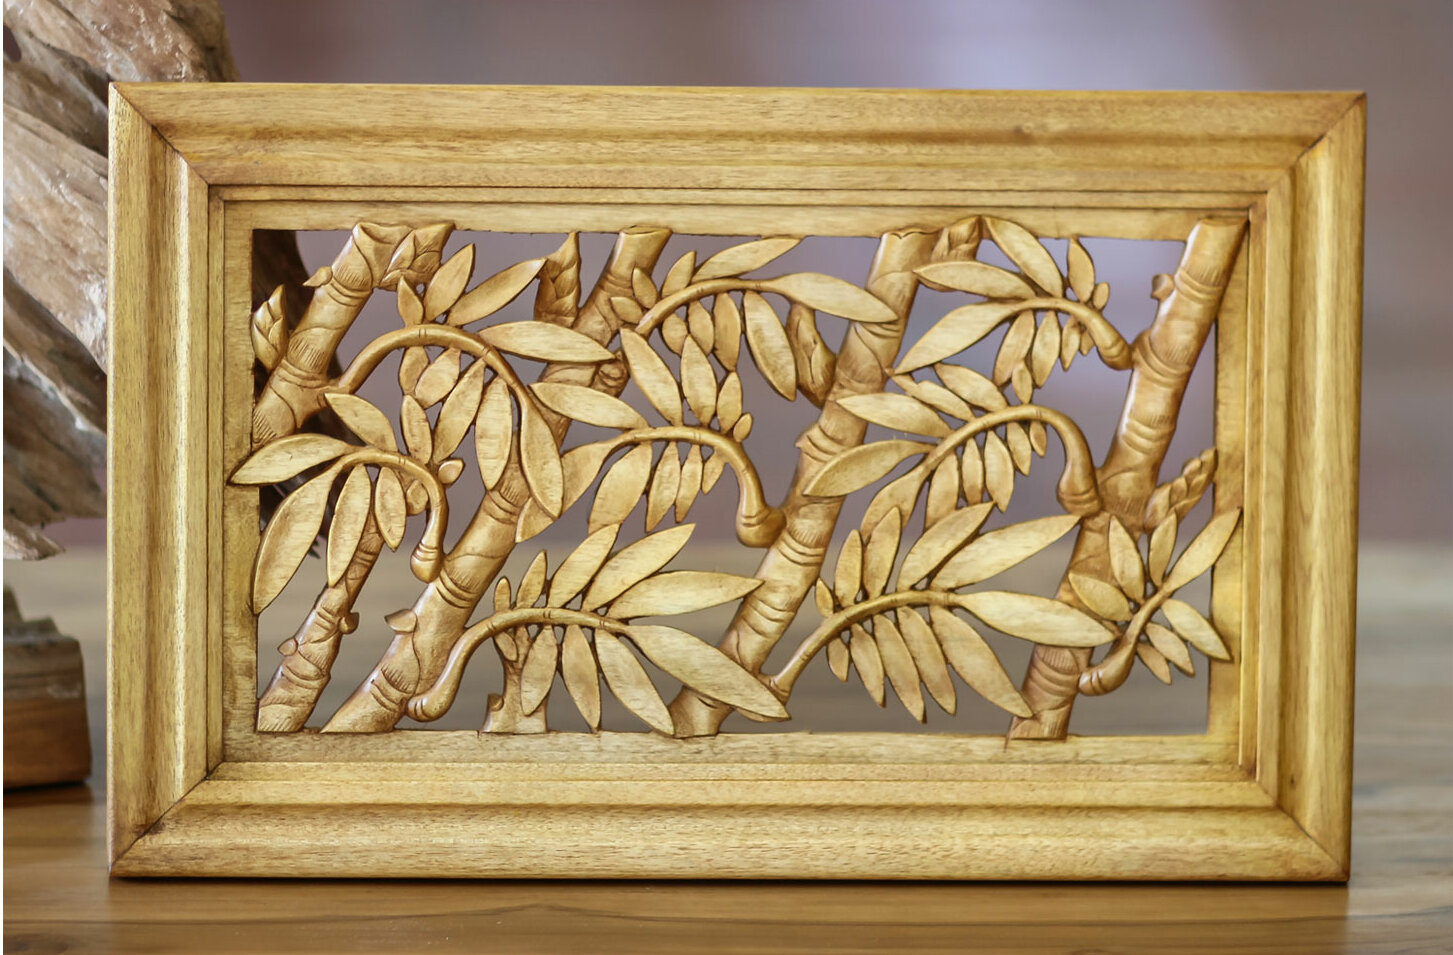 Novica Bamboo Thicket Wood Relief Panel Wall Décor | Wayfair